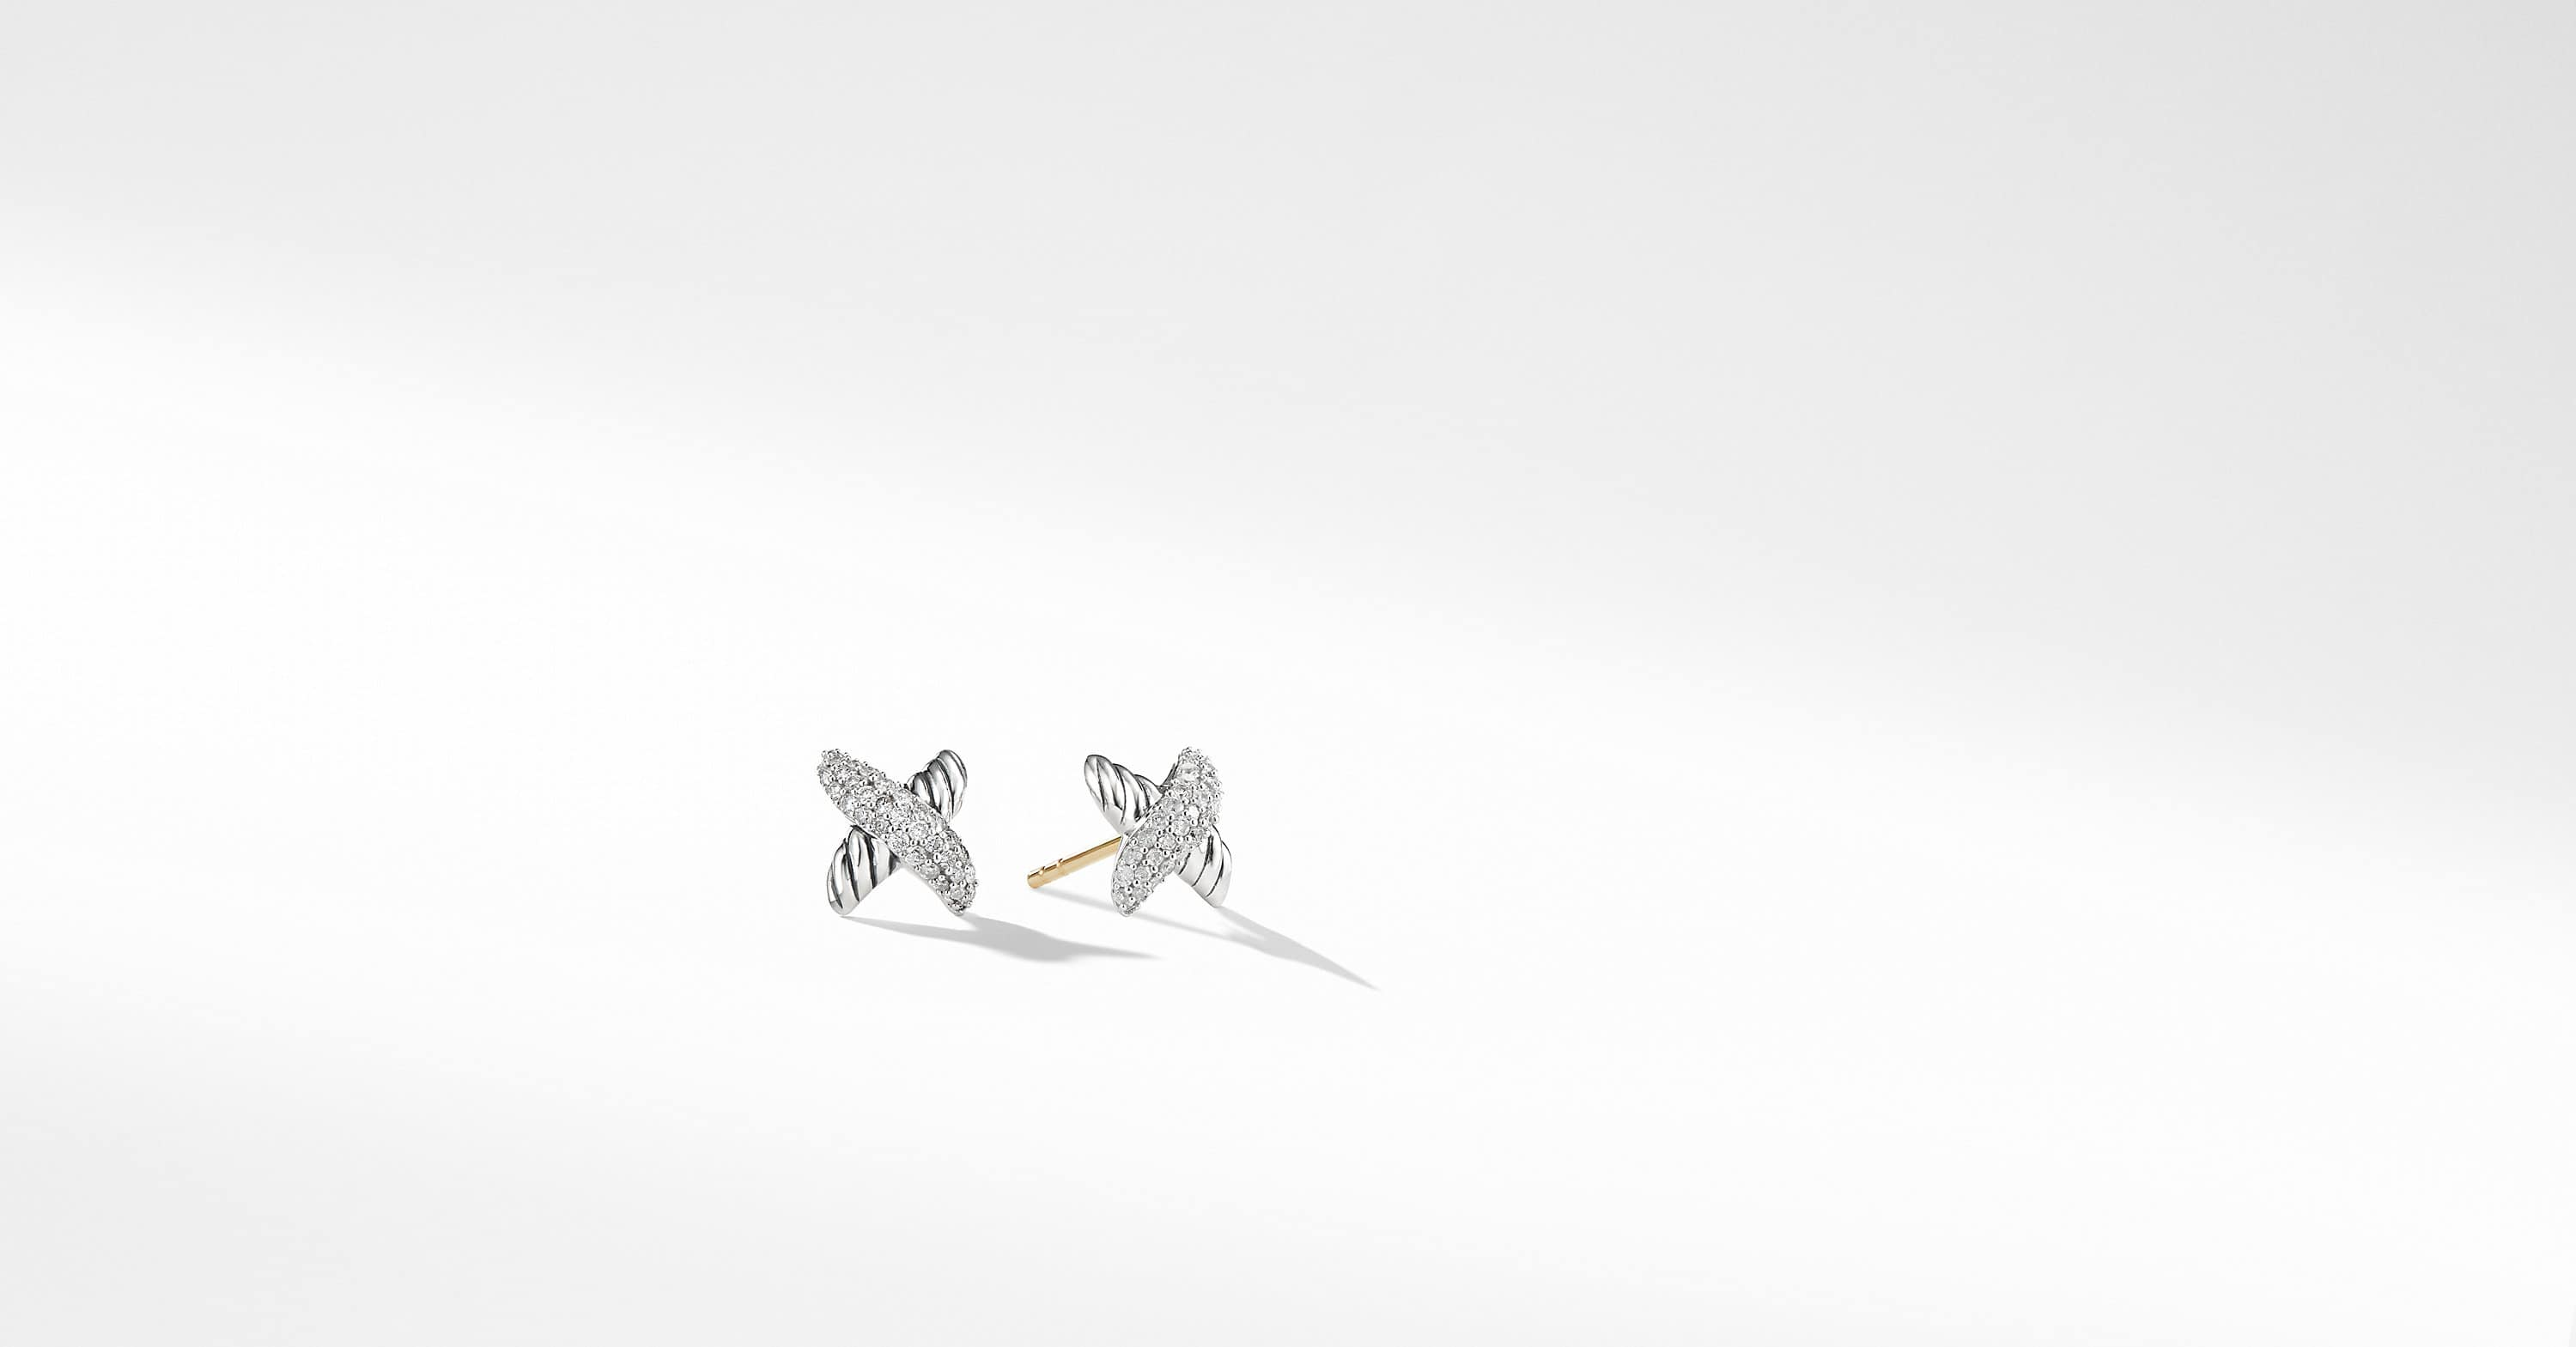 X Earrings with Diamonds